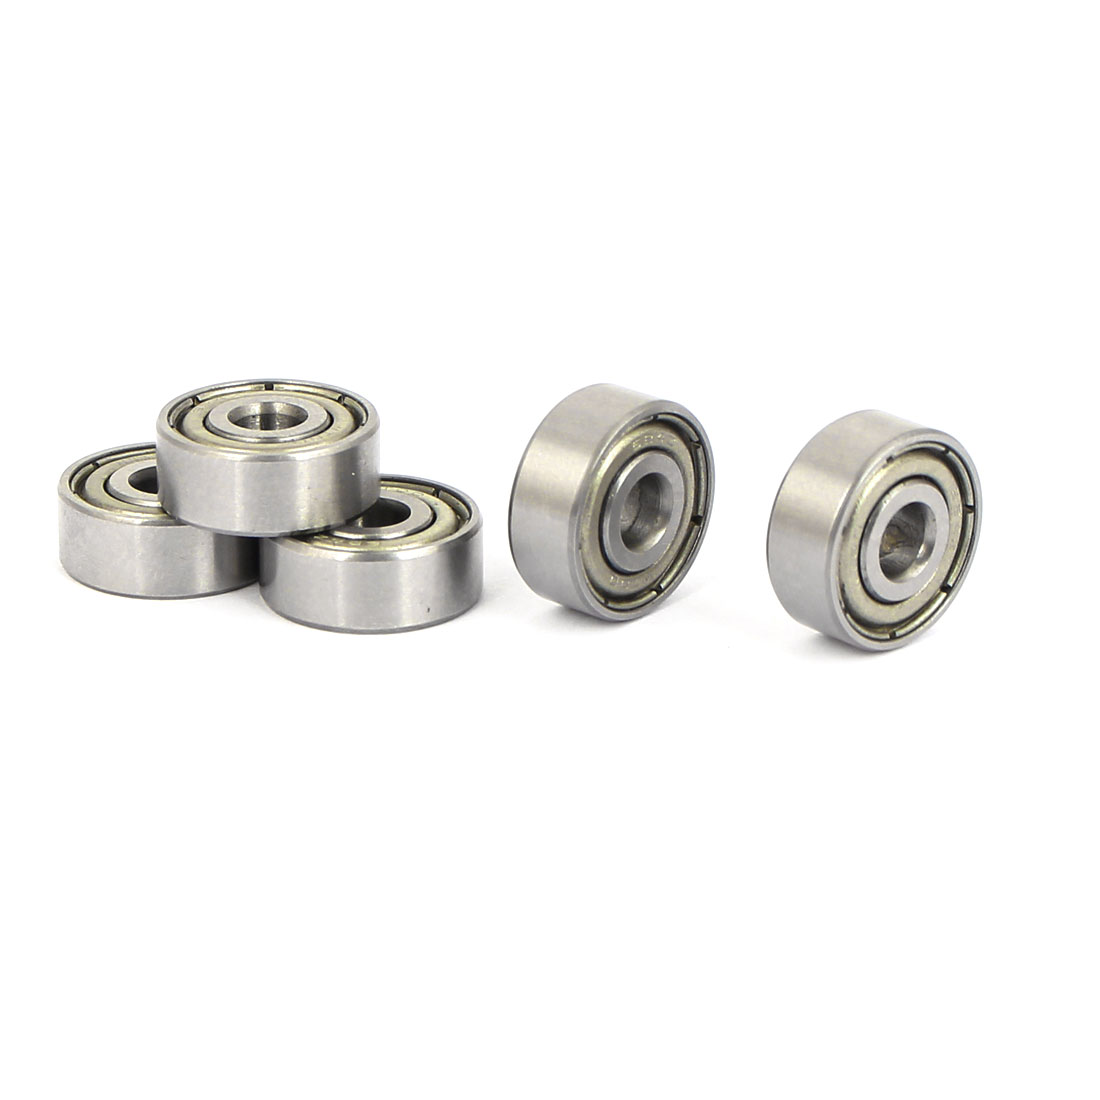 4mm x 13mm x 5mm Single Row Double Shielded Deep Groove Ball Bearings 5PCS